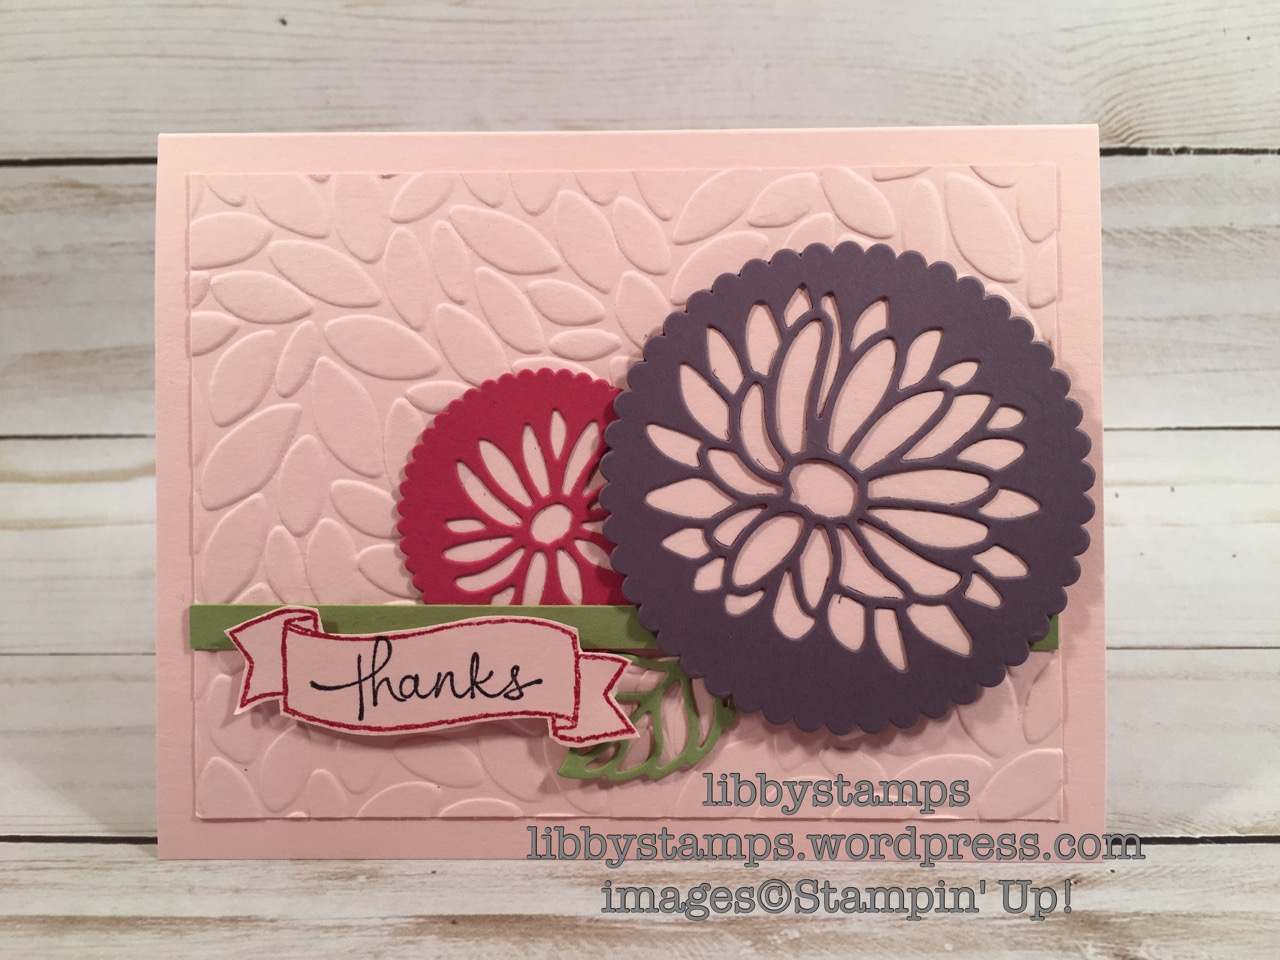 libbystamps, stampin up, Endless Thanks, Layering Circles Framelits, Petal Burst Embossing Folder, Stylish Stems Framelits, CCMC443